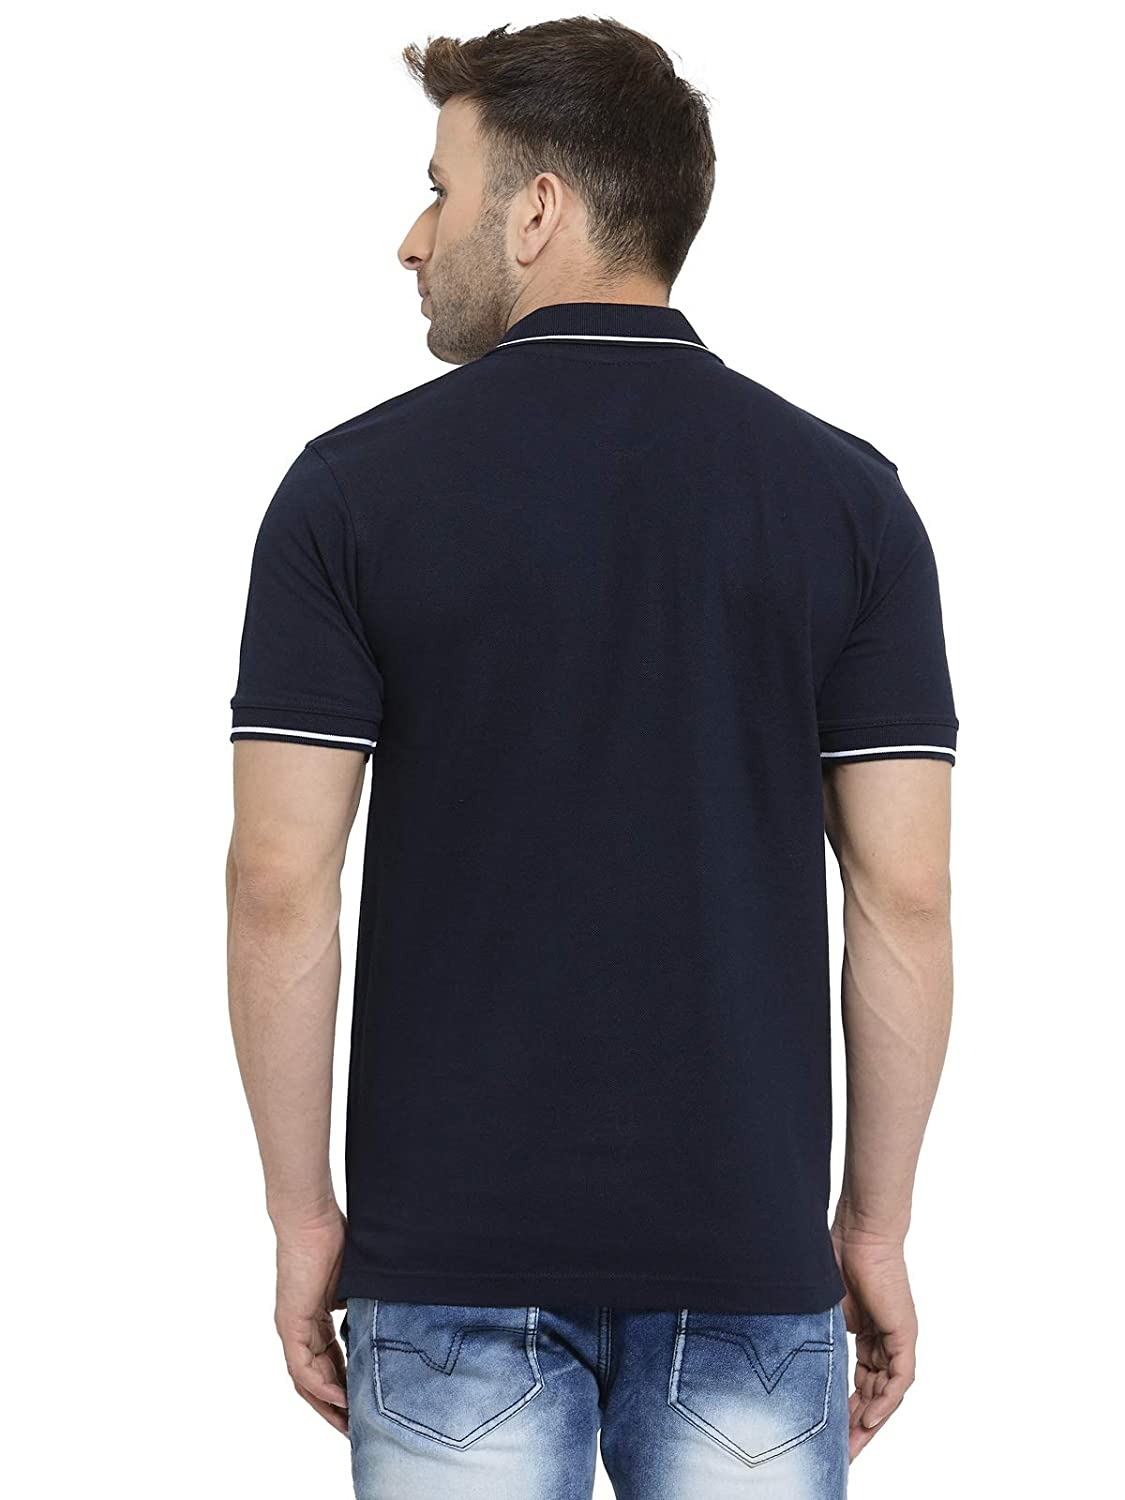 Men's Navy Blue With White Tipping Cotton Polo T-Shirt (L-42)